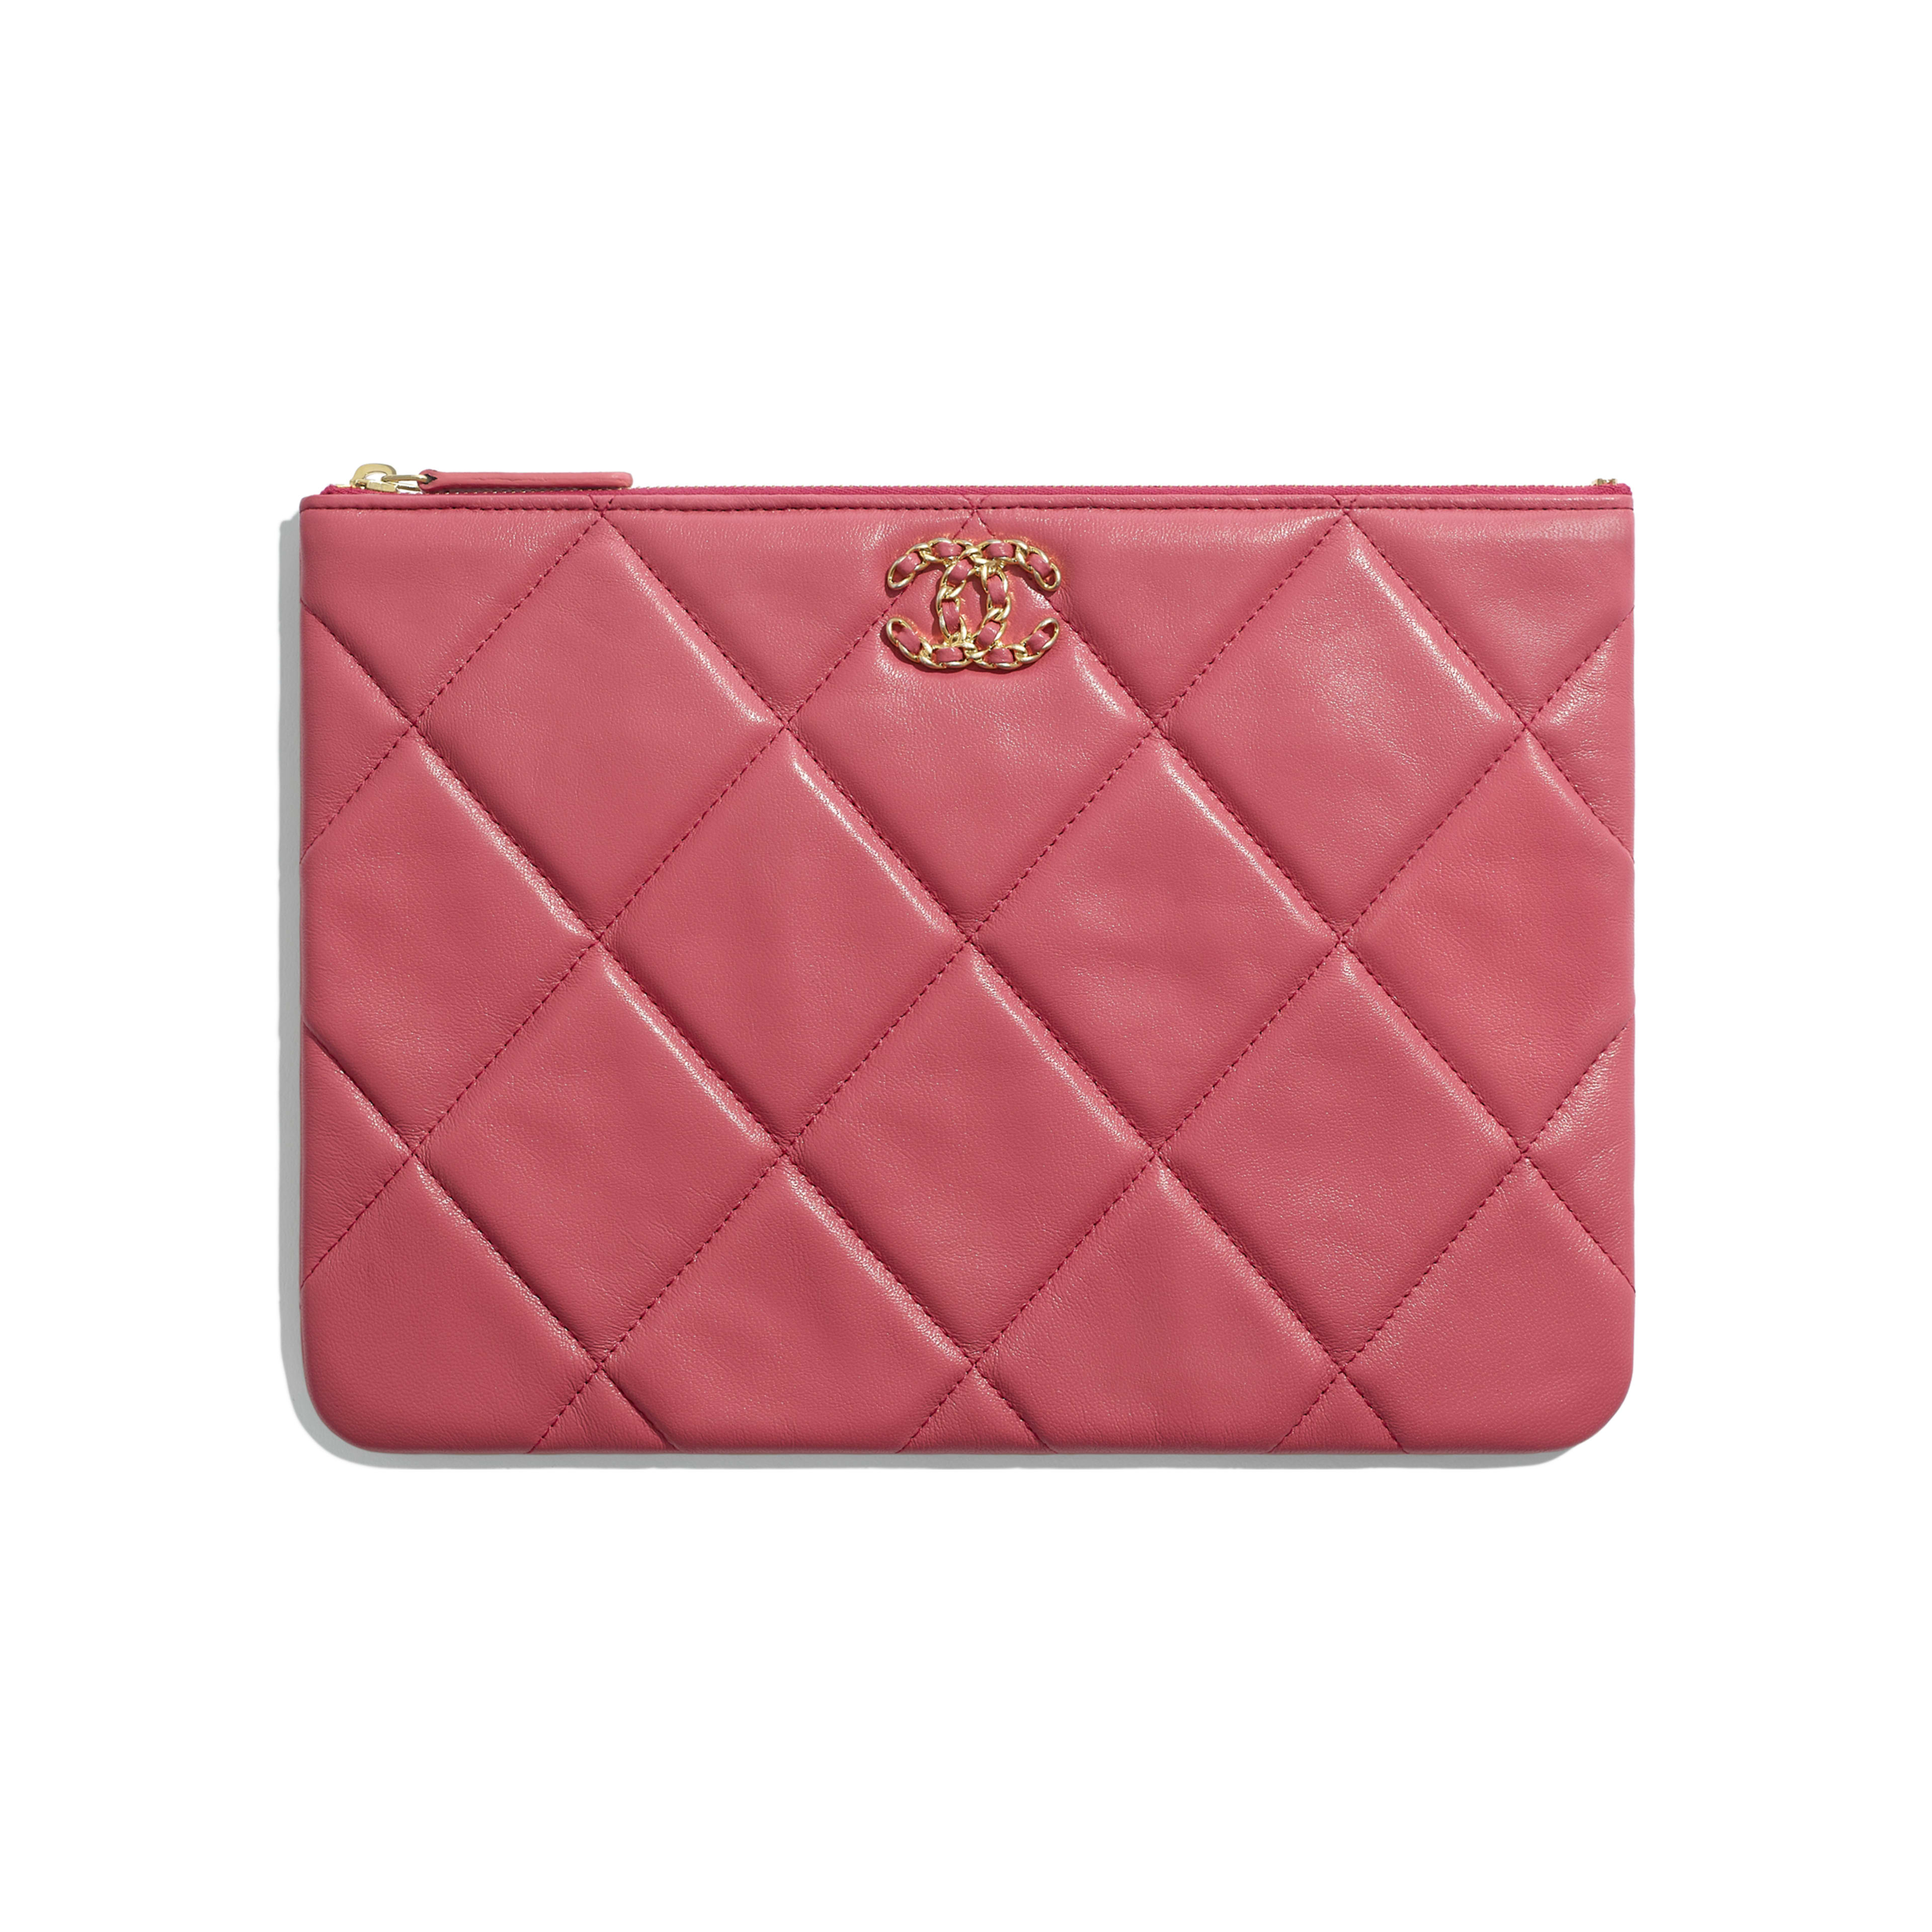 CHANEL 19 Pouch - Pink - Lambskin, Gold-Tone, Silver-Tone & Ruthenium-Finish Metal - Default view - see full sized version